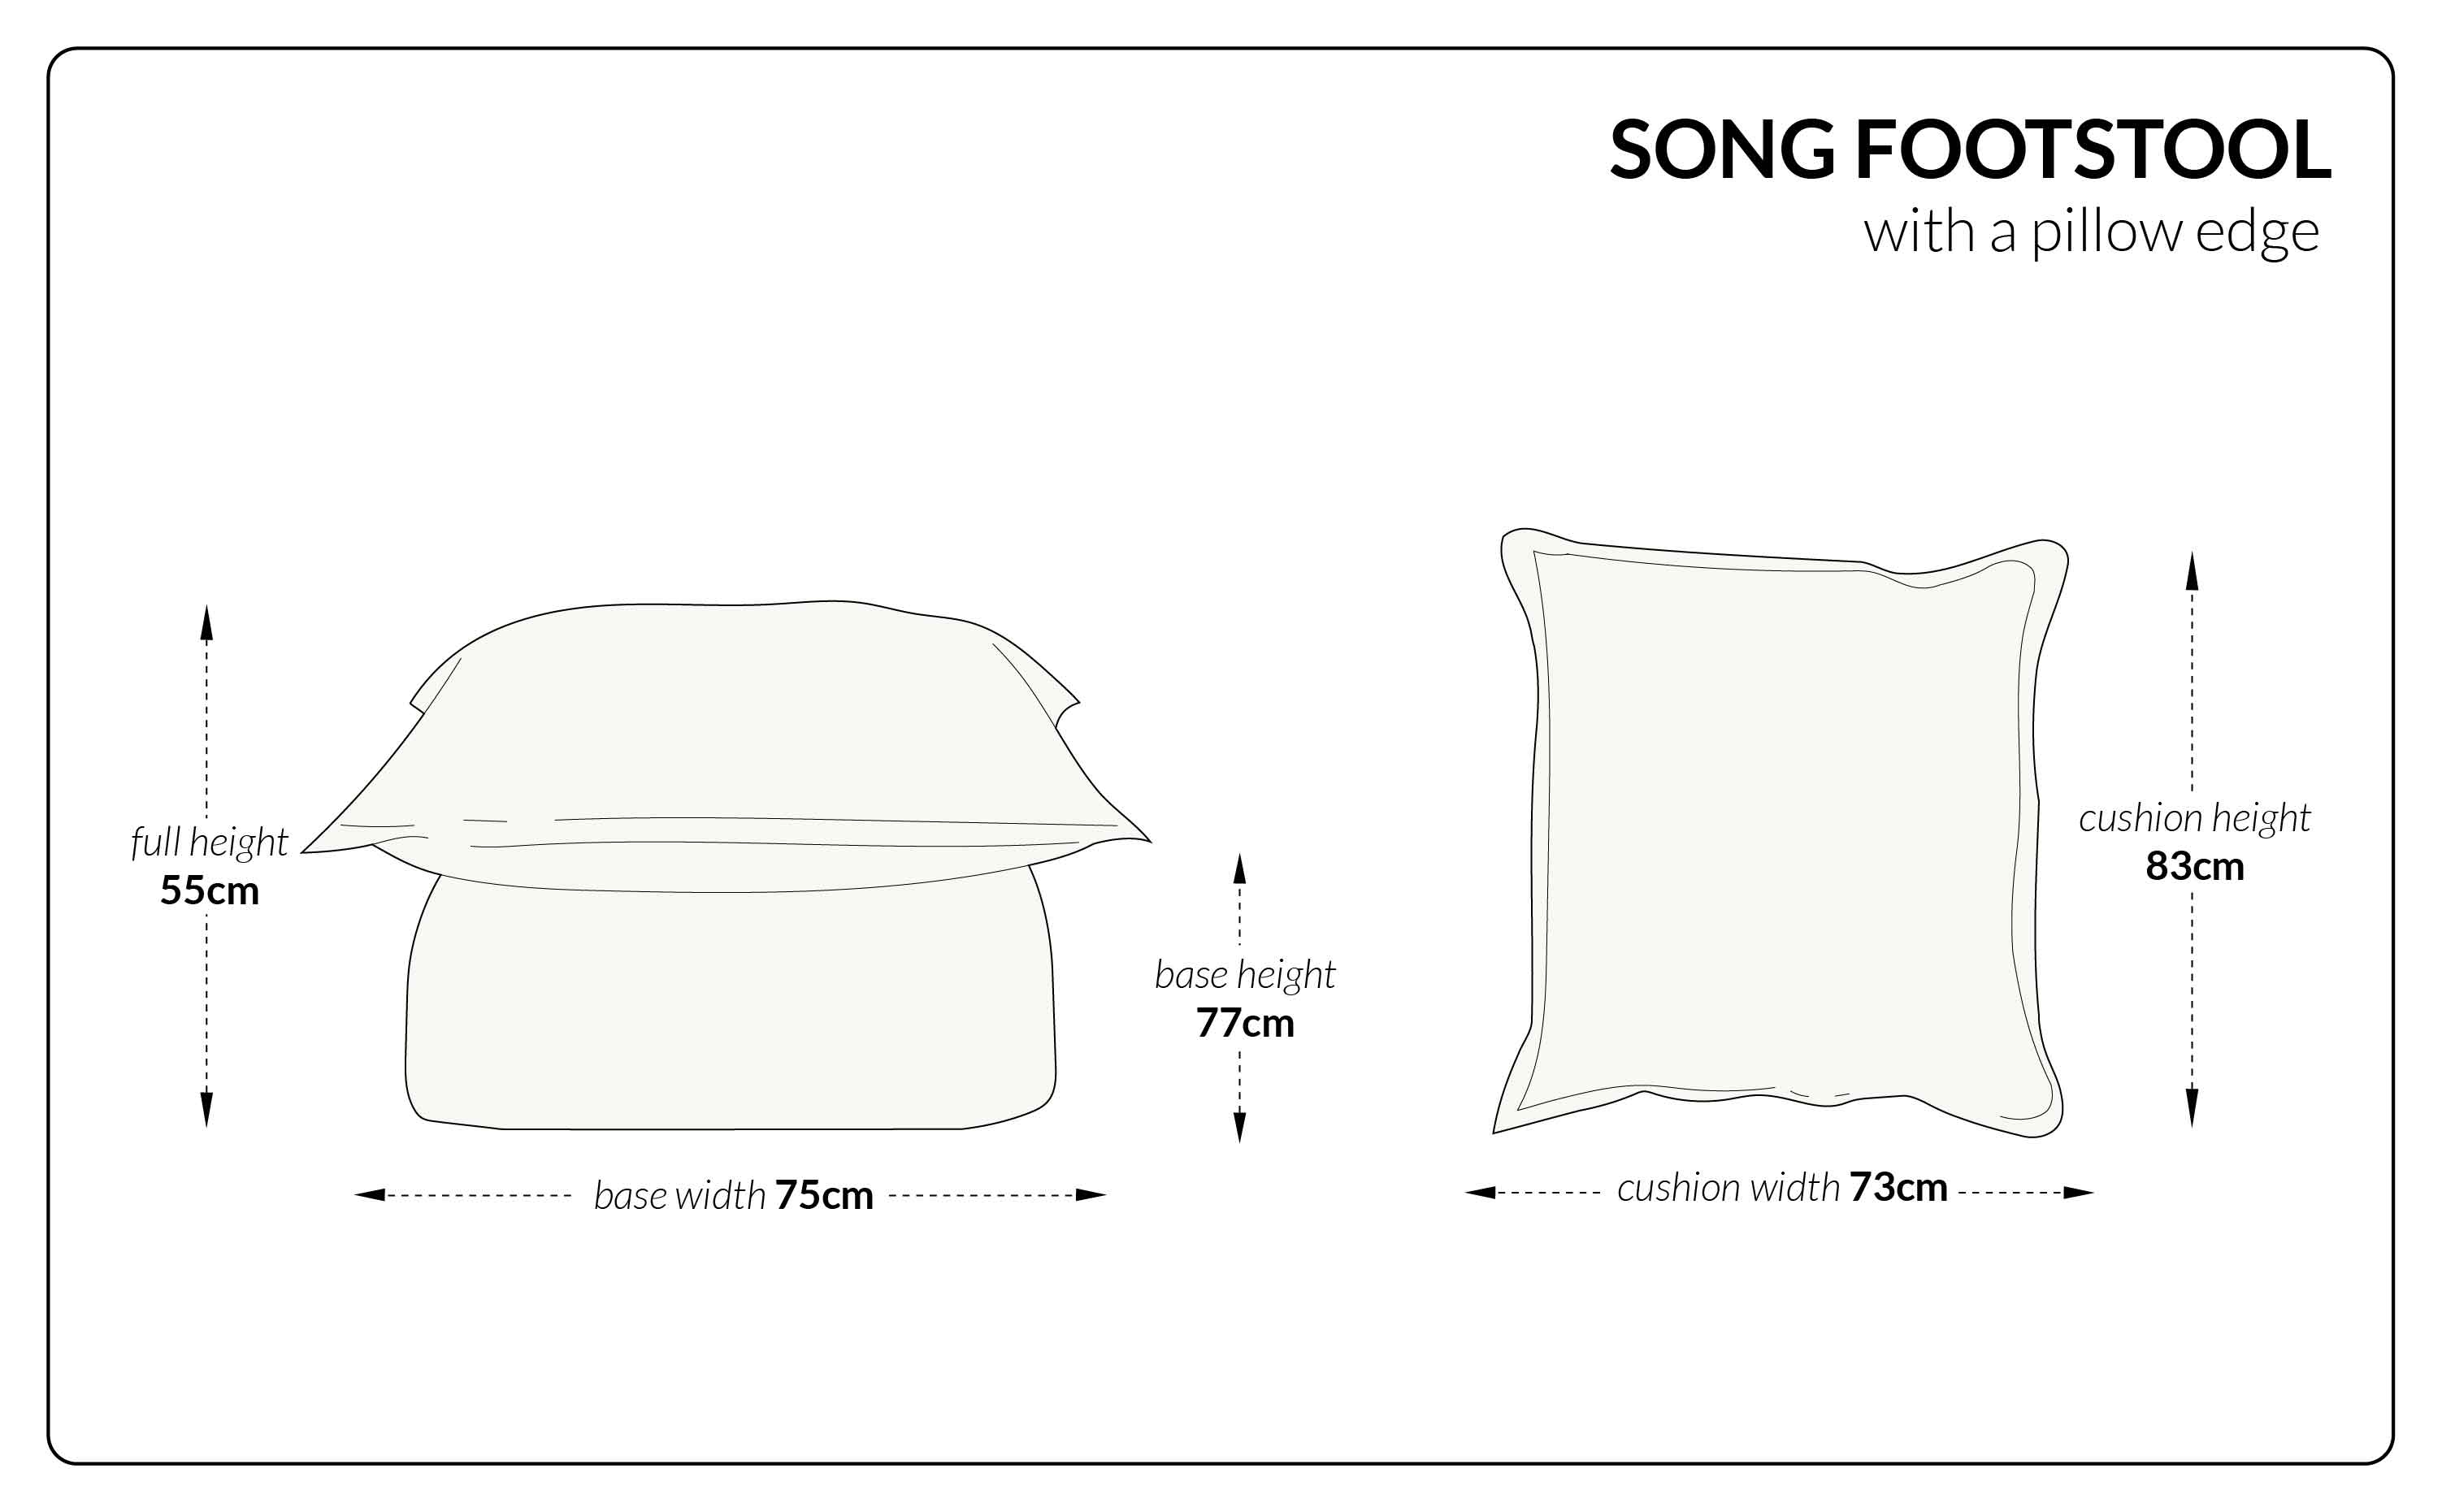 Song Footstool